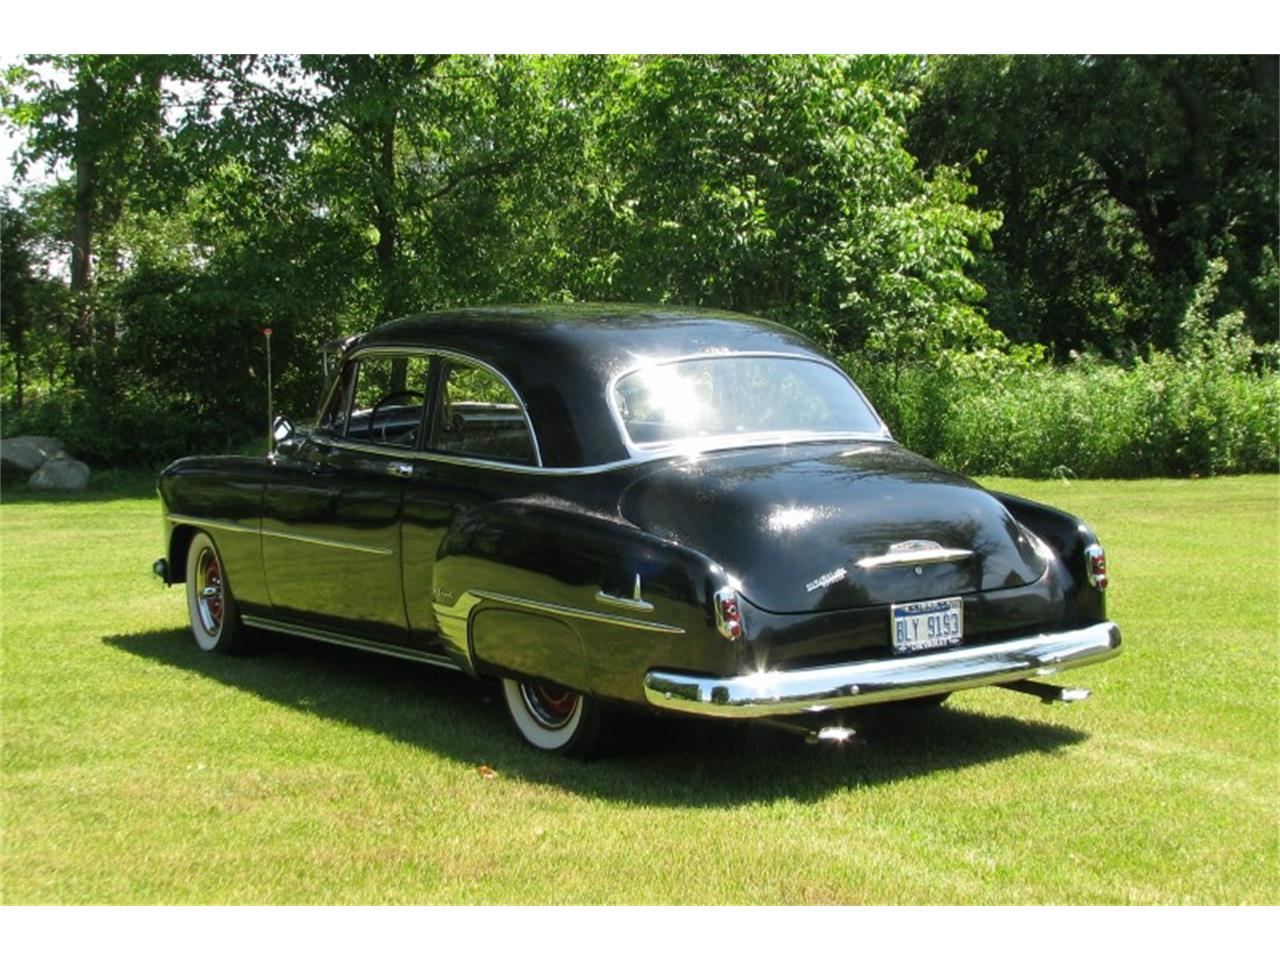 Large Picture of Classic '52 Chevrolet Deluxe Business Coupe located in Ortonville Michigan - $17,000.00 - LAP4